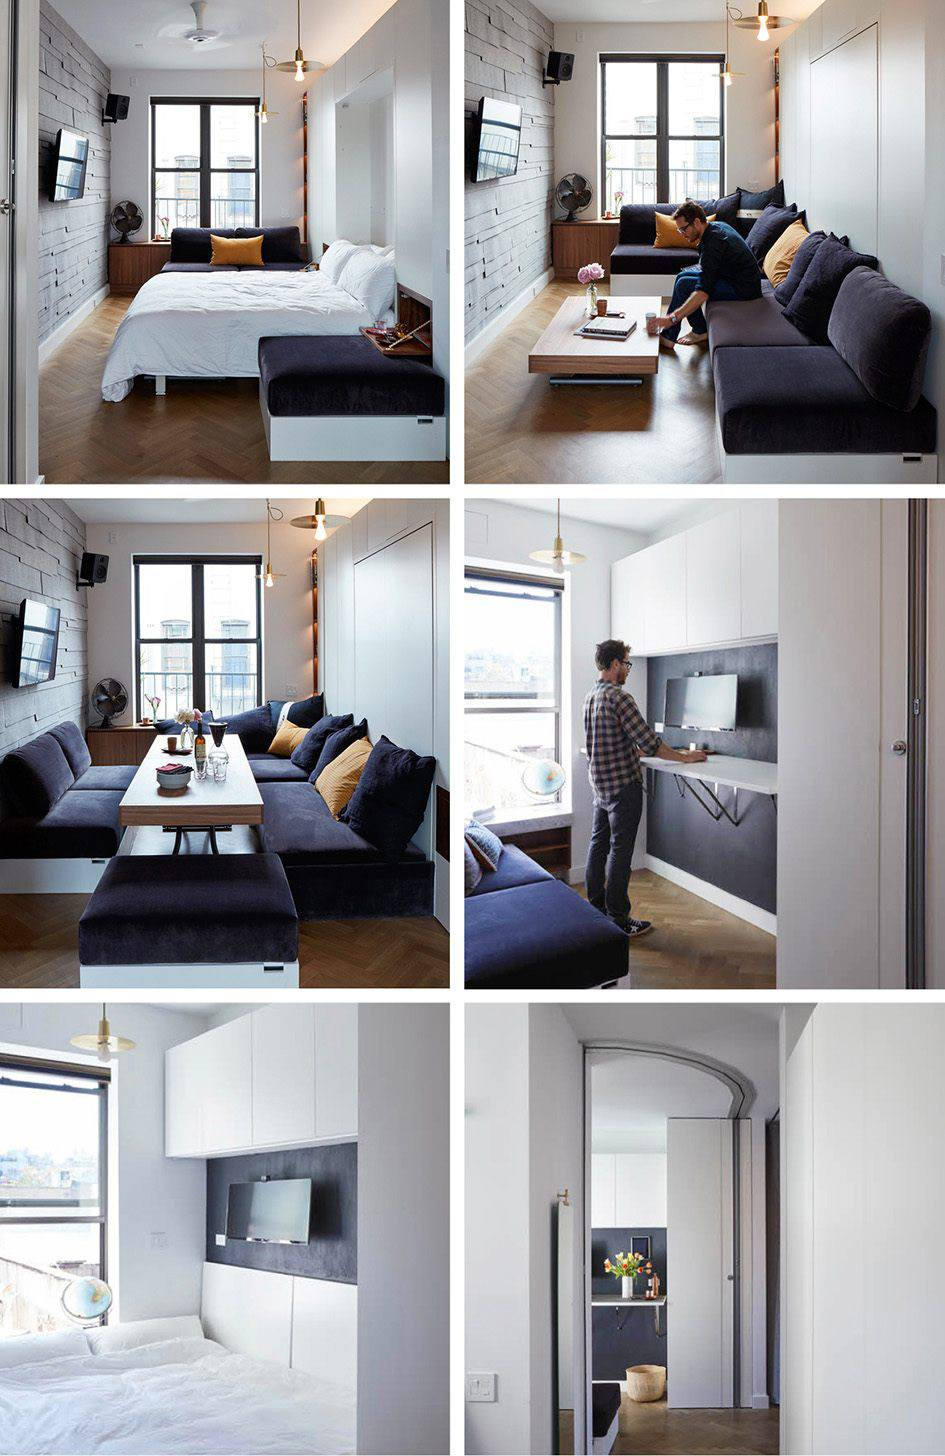 Collection tendances les micro-appartements - New York